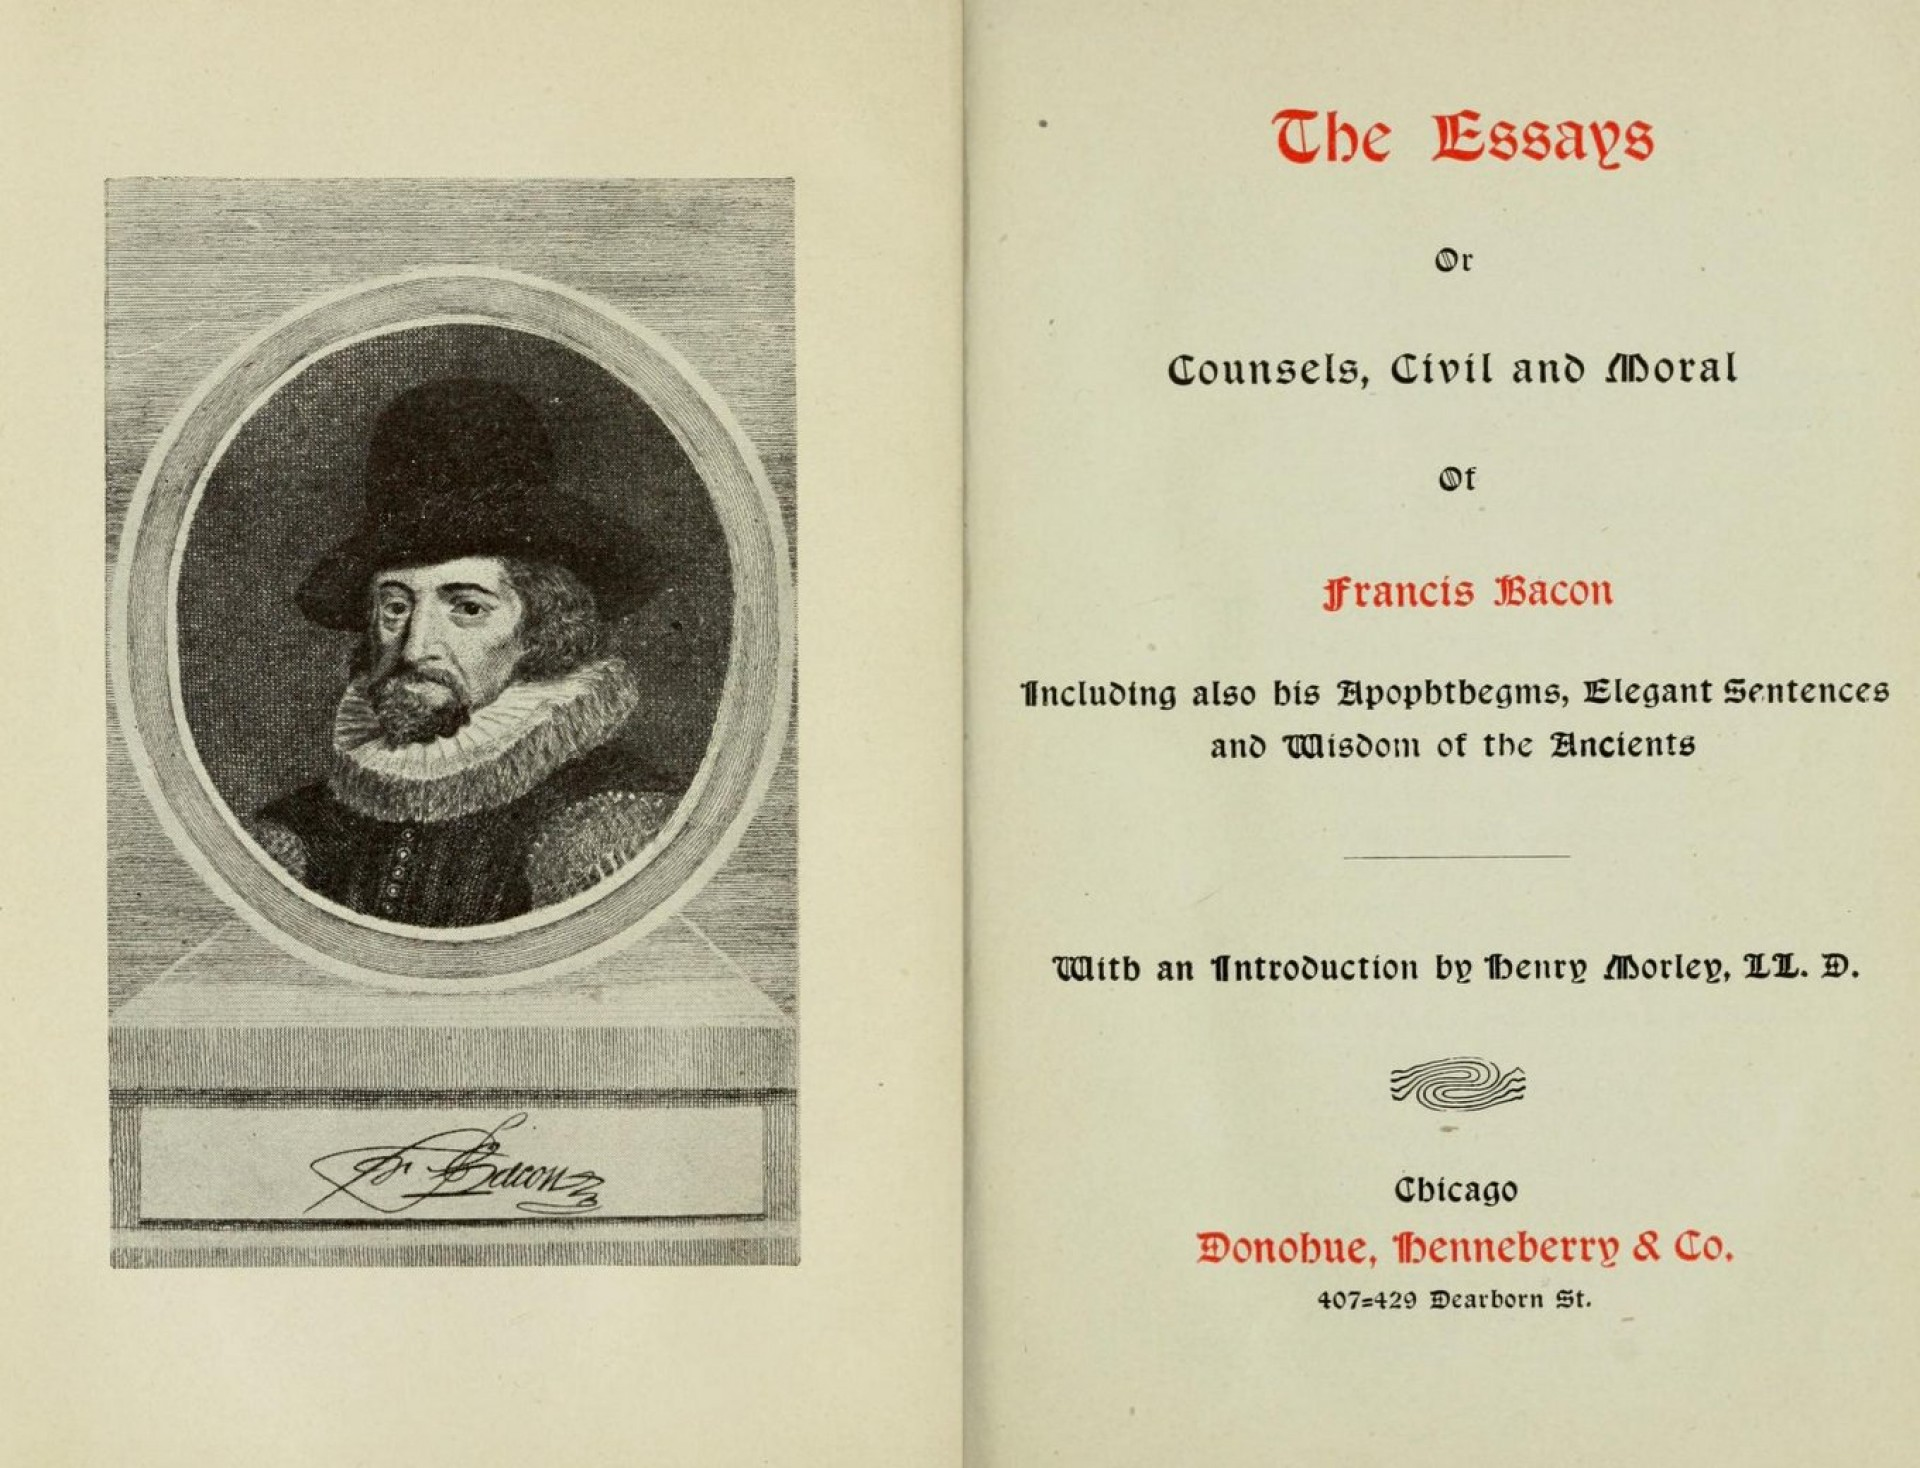 014 Essay Example Francis Bacon The Essays Amazing Bacons Pdf Free Download Bacon's Of Truth Summary 1920